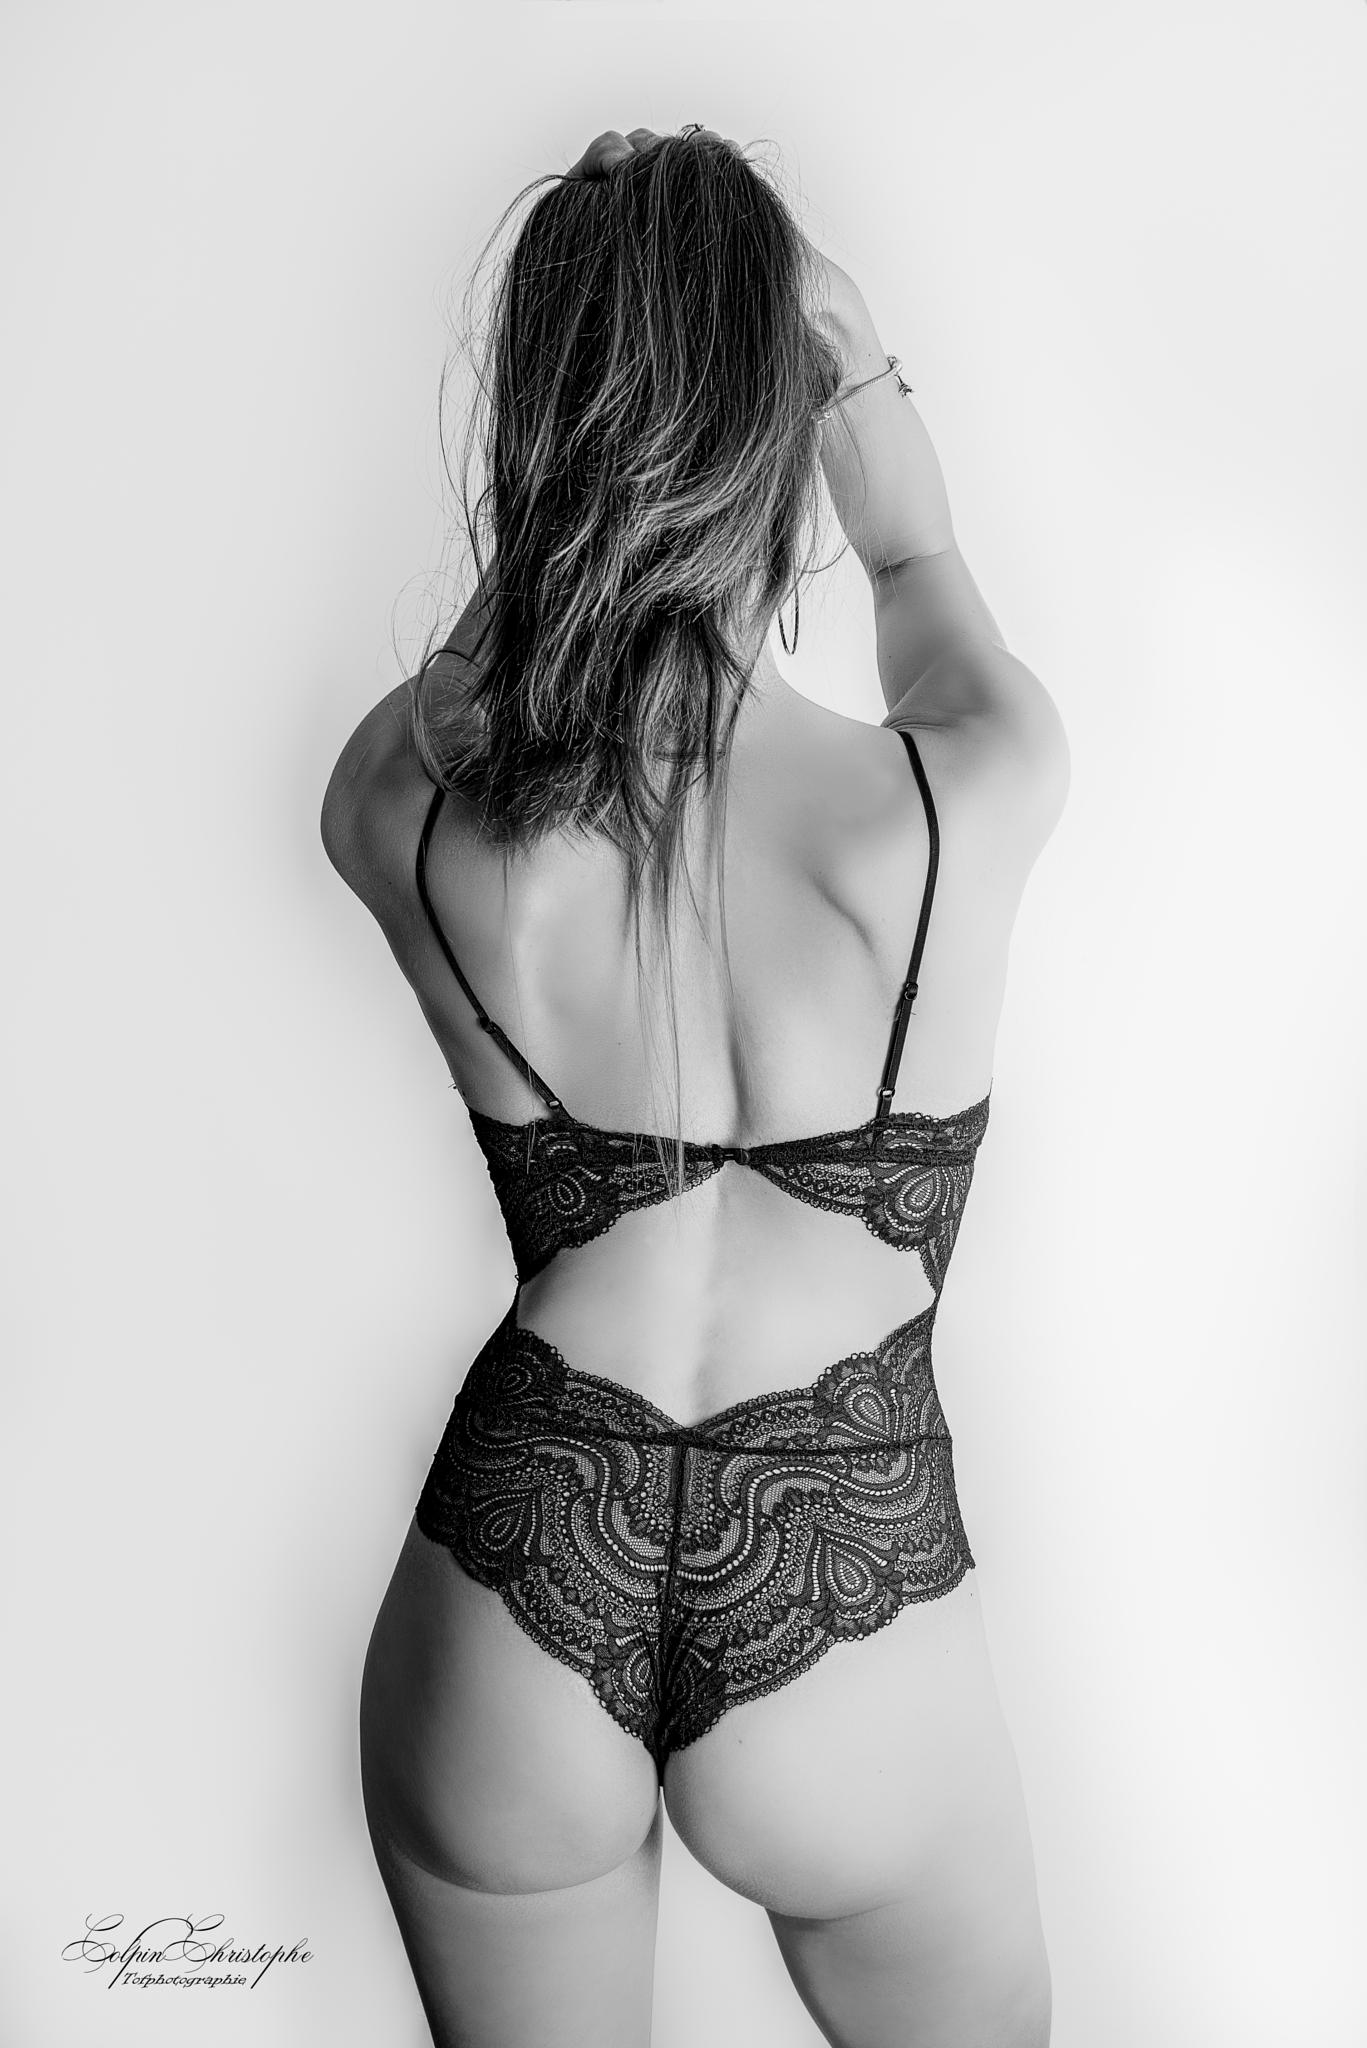 lingerie  by tofphotographie